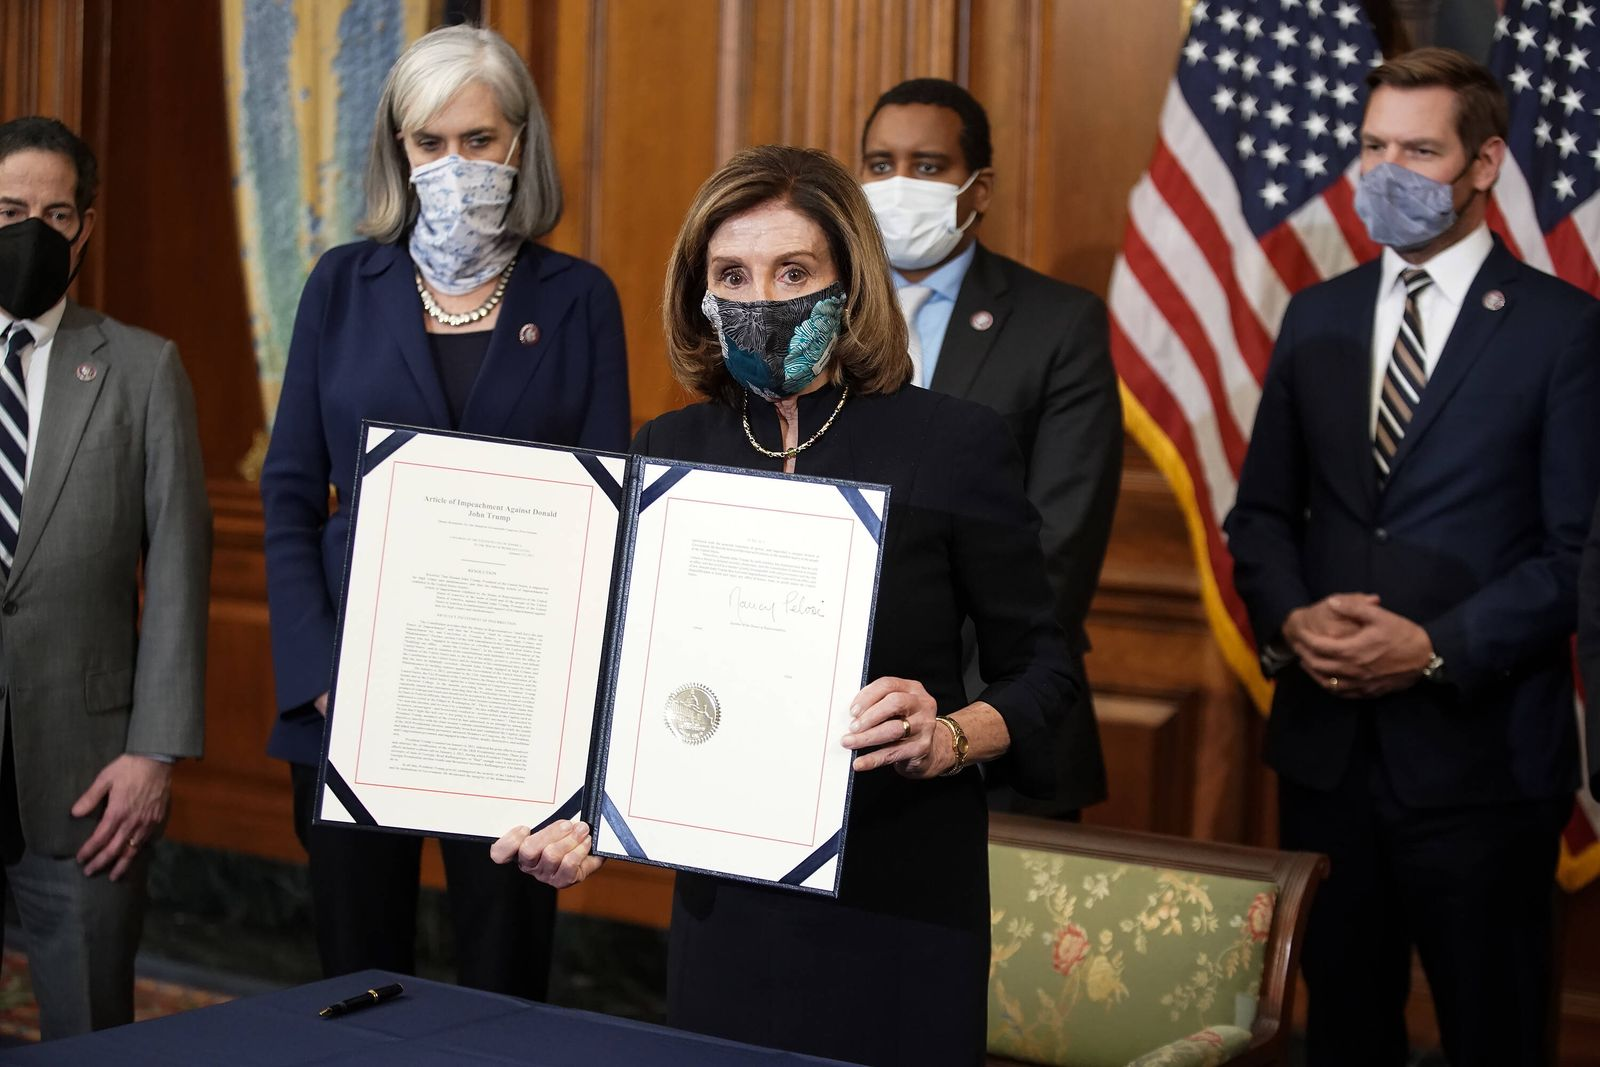 January 13, 2021, Washington, District of Columbia, USA: Speaker Nancy Pelosi (D-Calif.) holds H.R. 24, an article of i